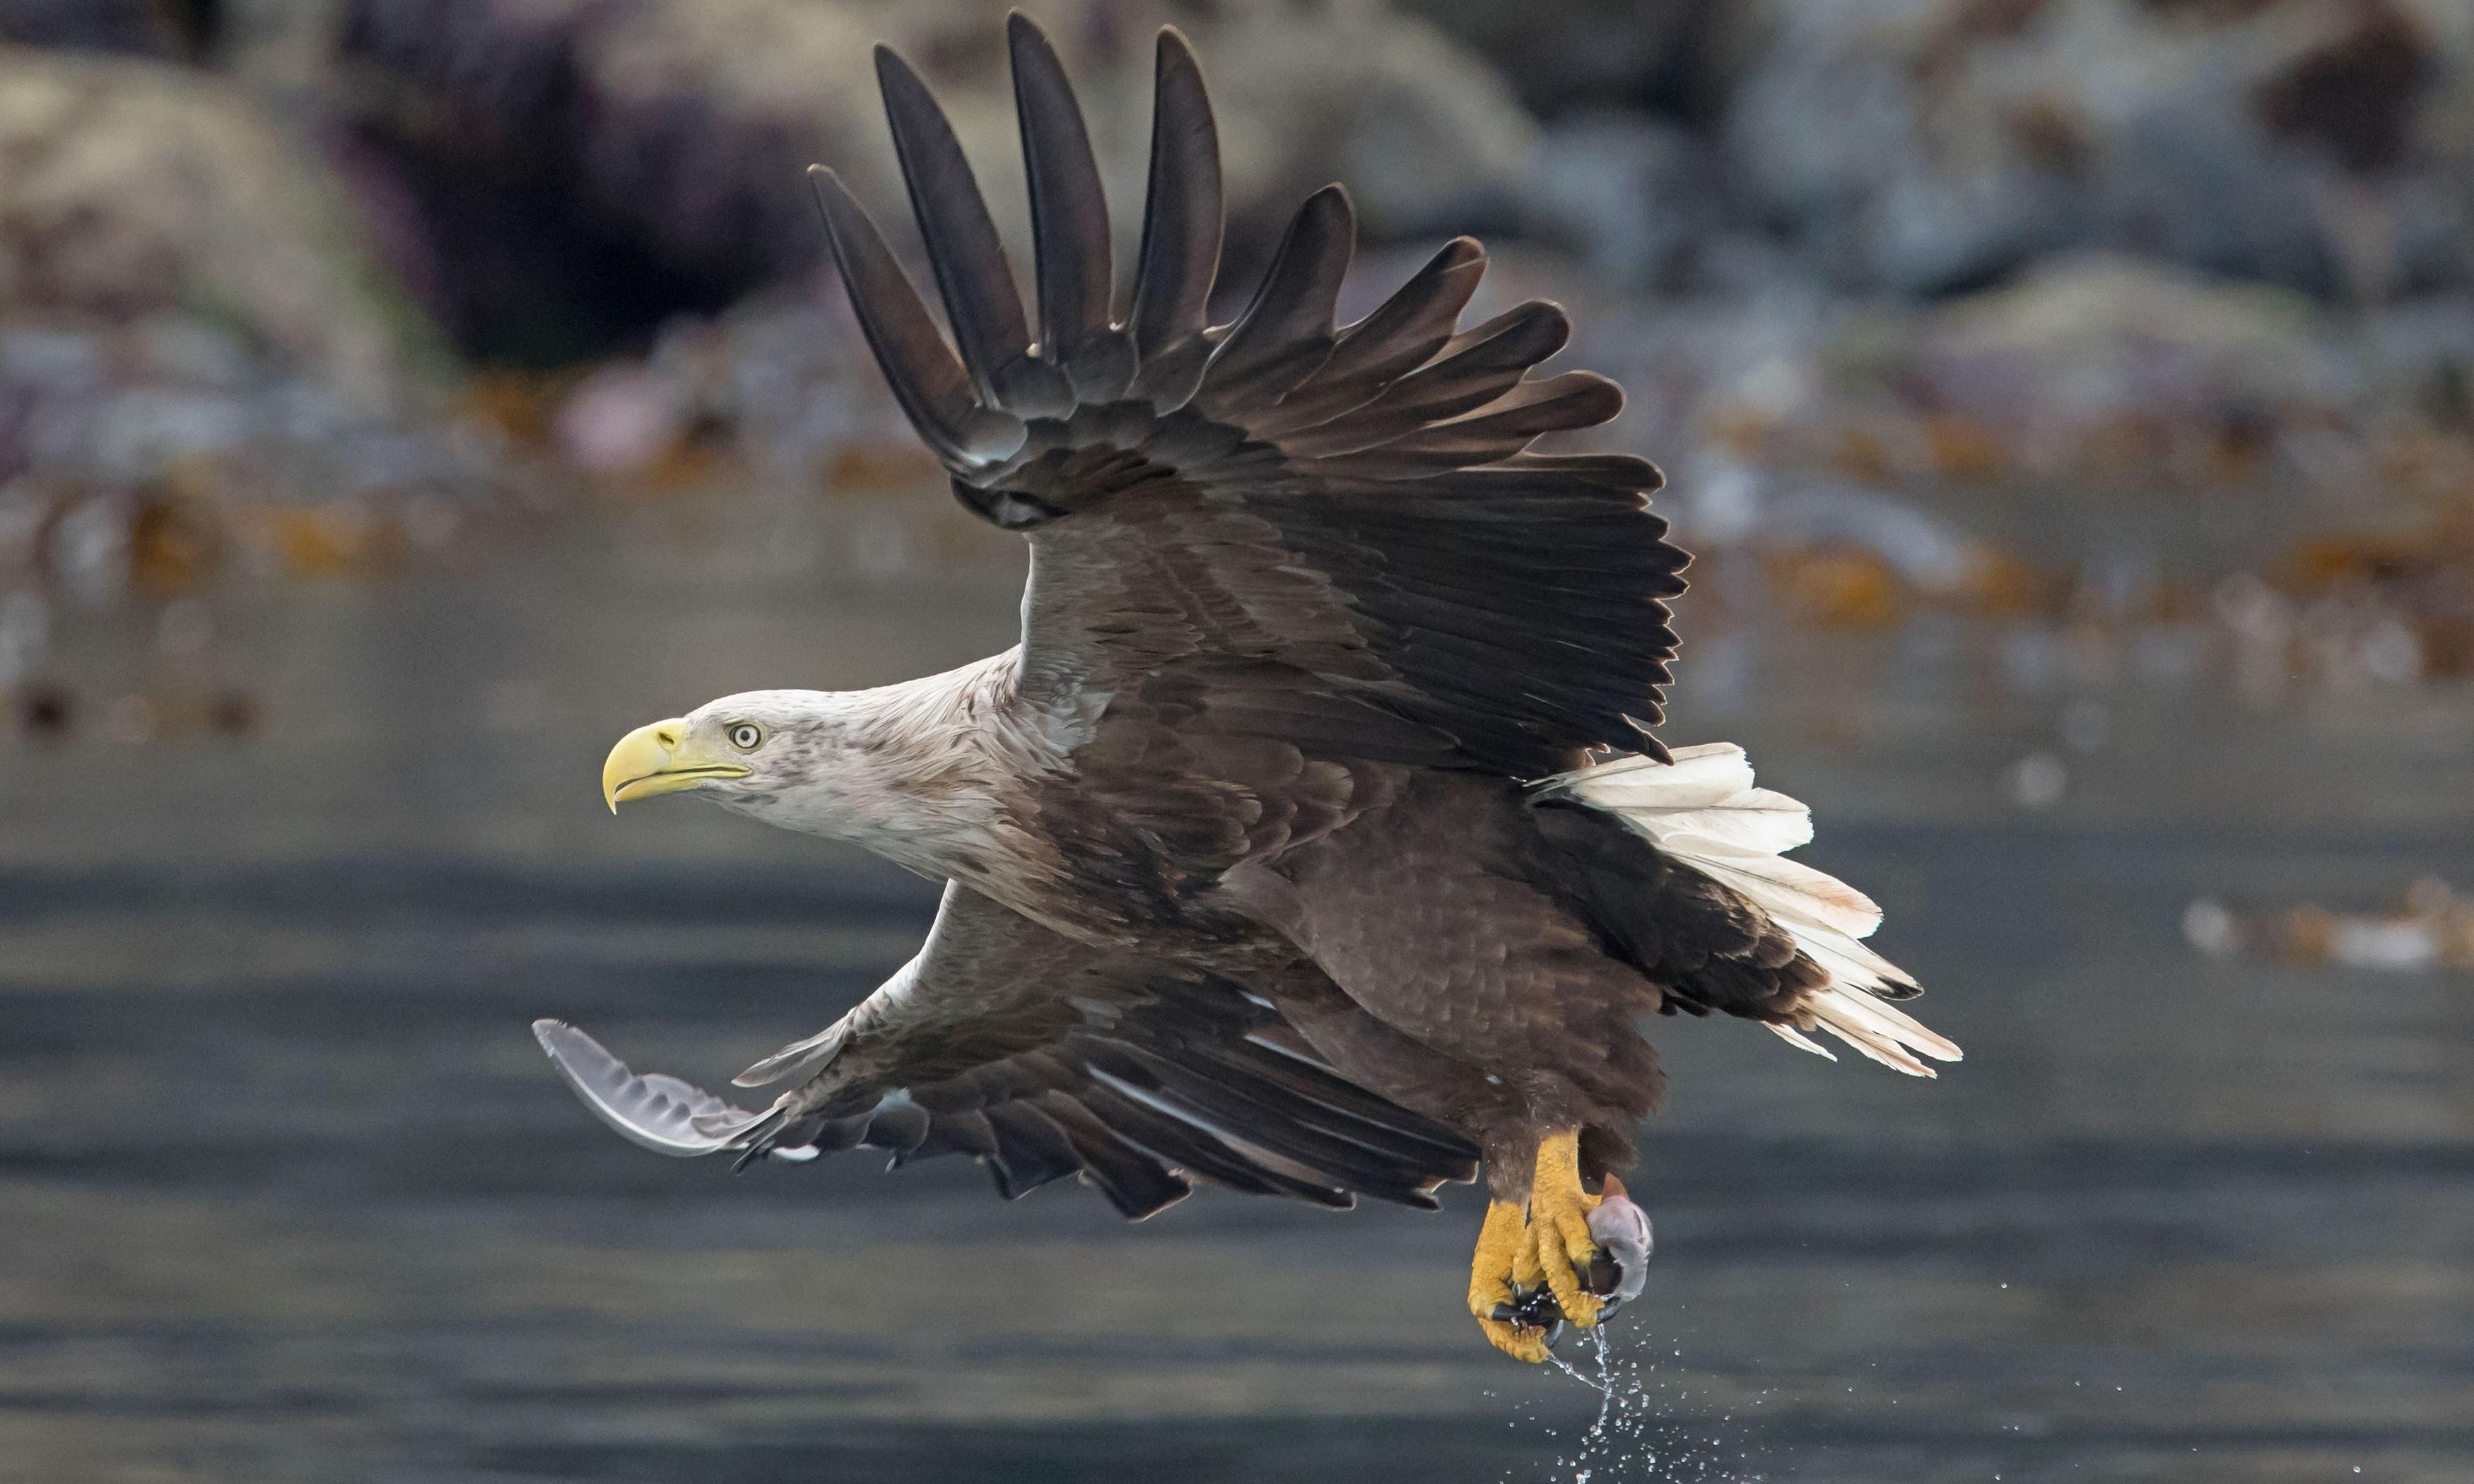 White-tailed eagles return to southern Britain after 240 years